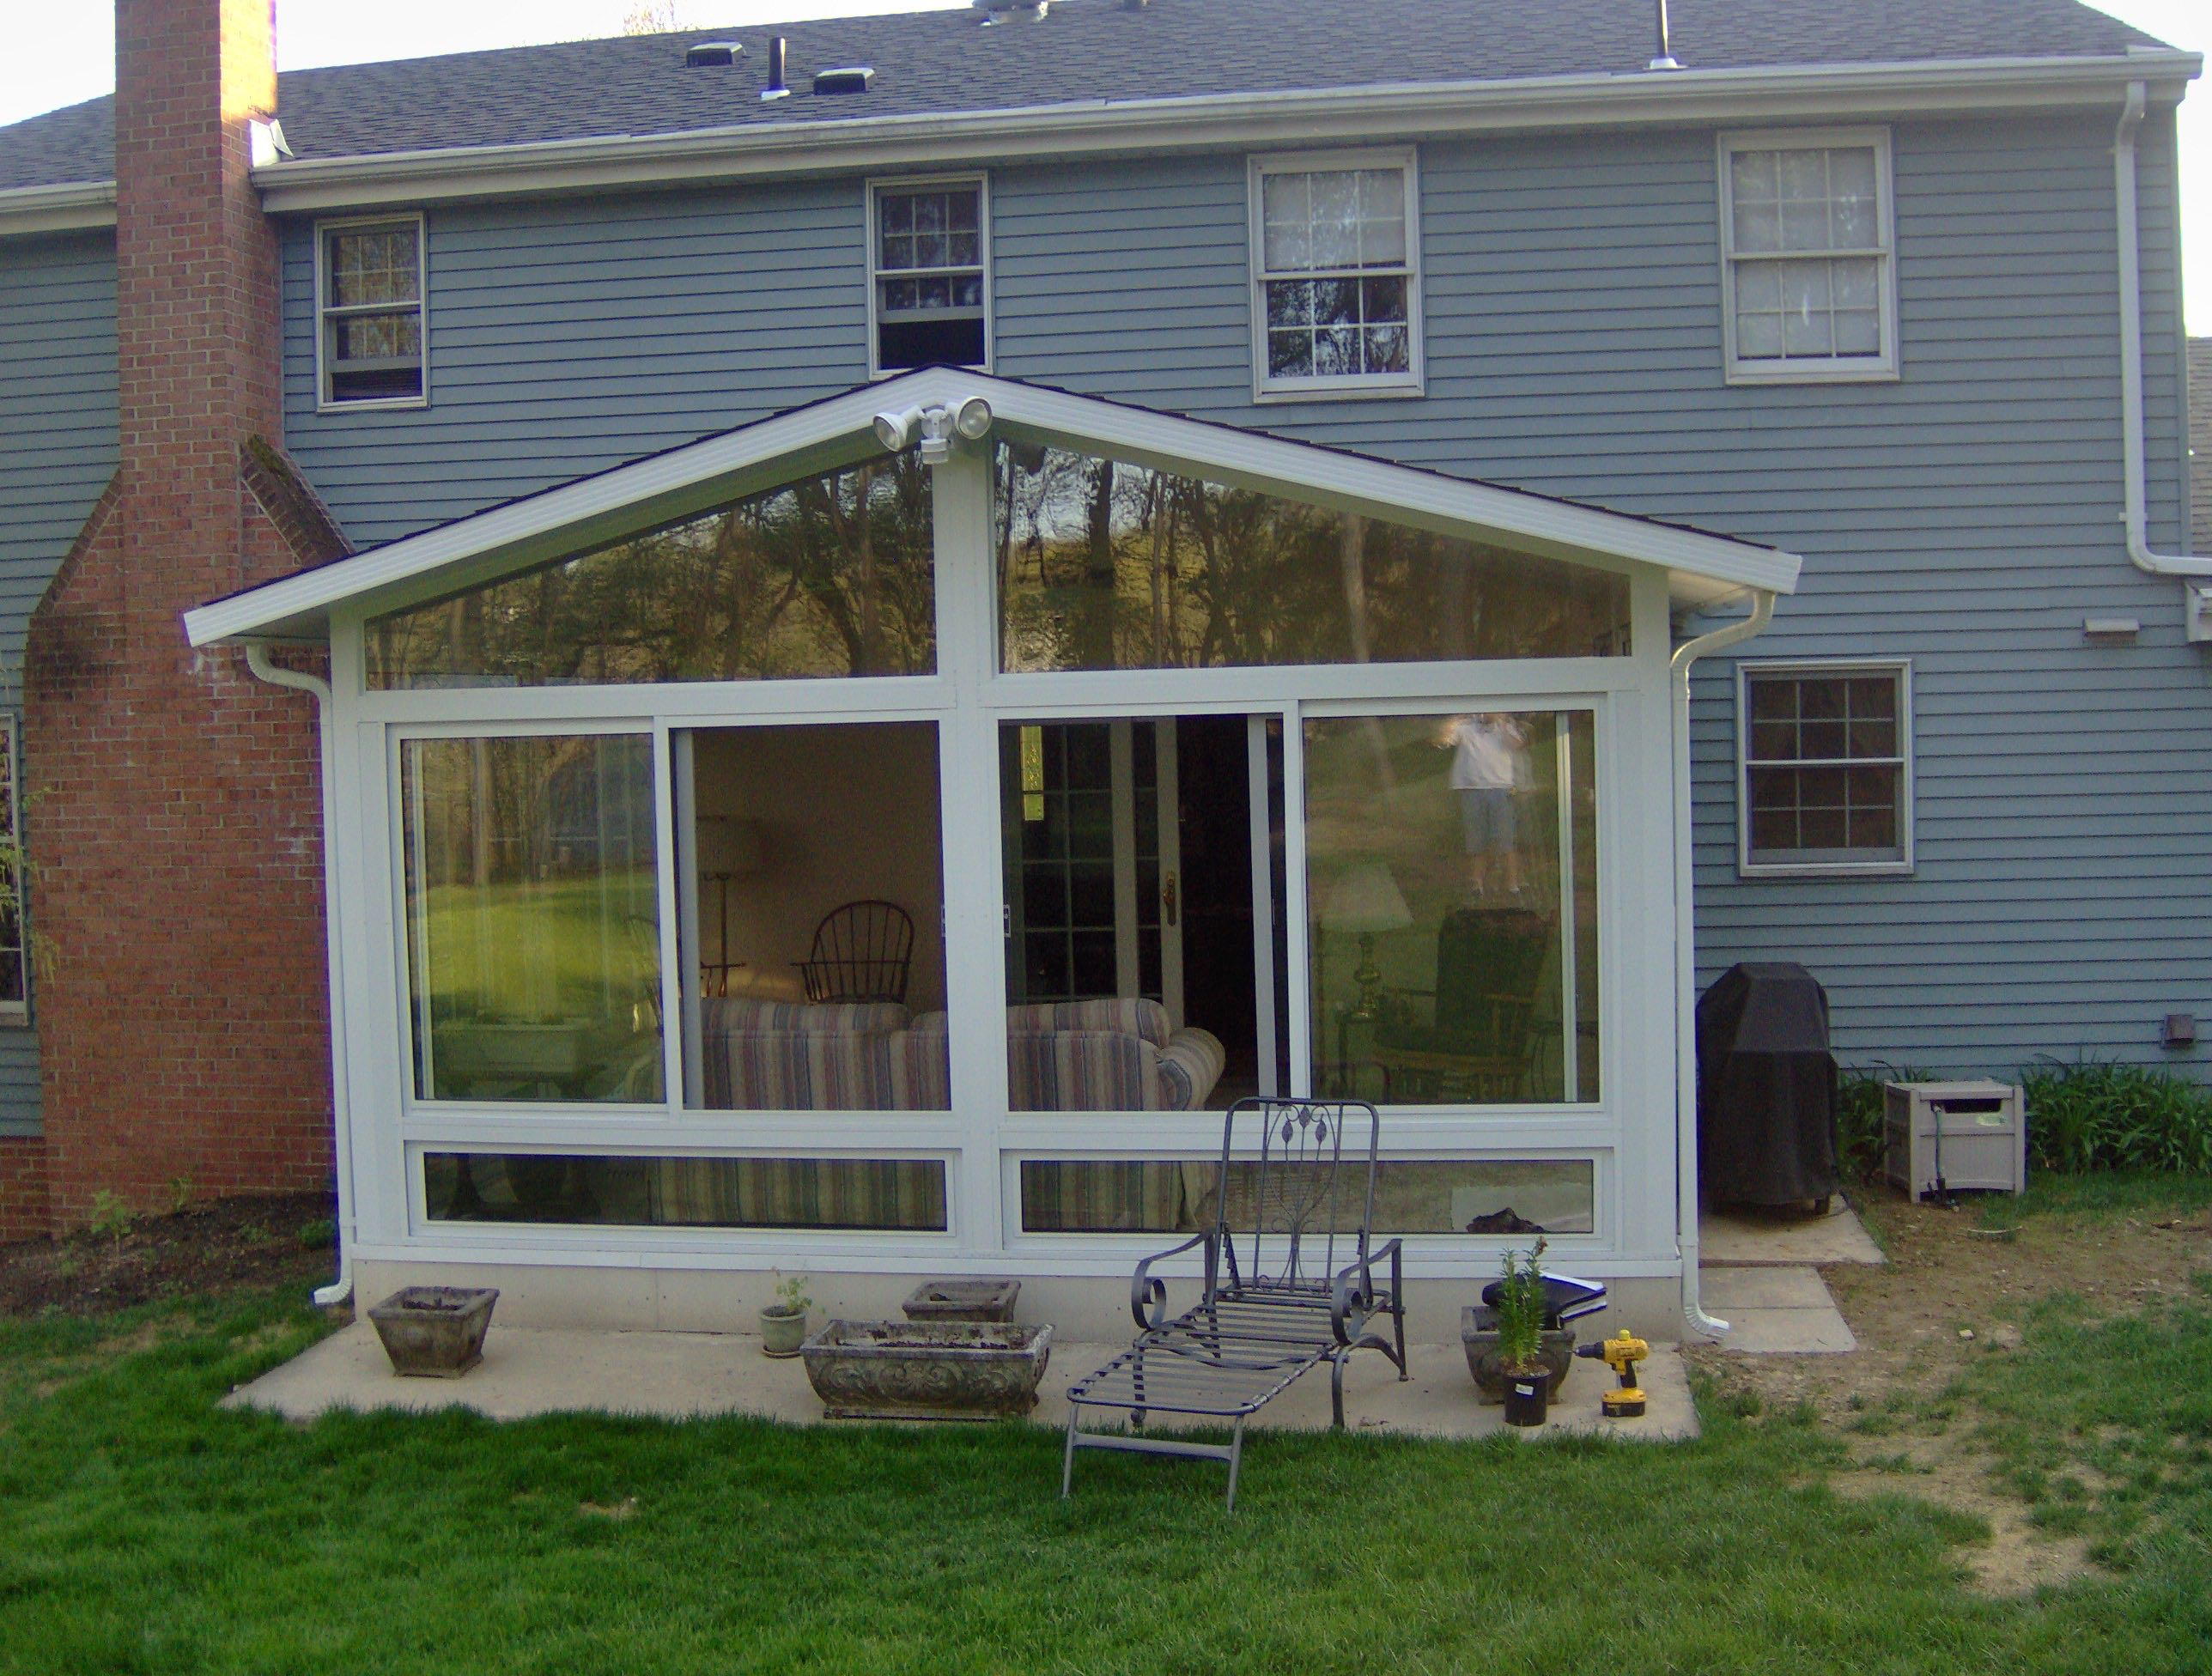 Betterliving patio sunrooms of pittsburgh for Porch sunroom